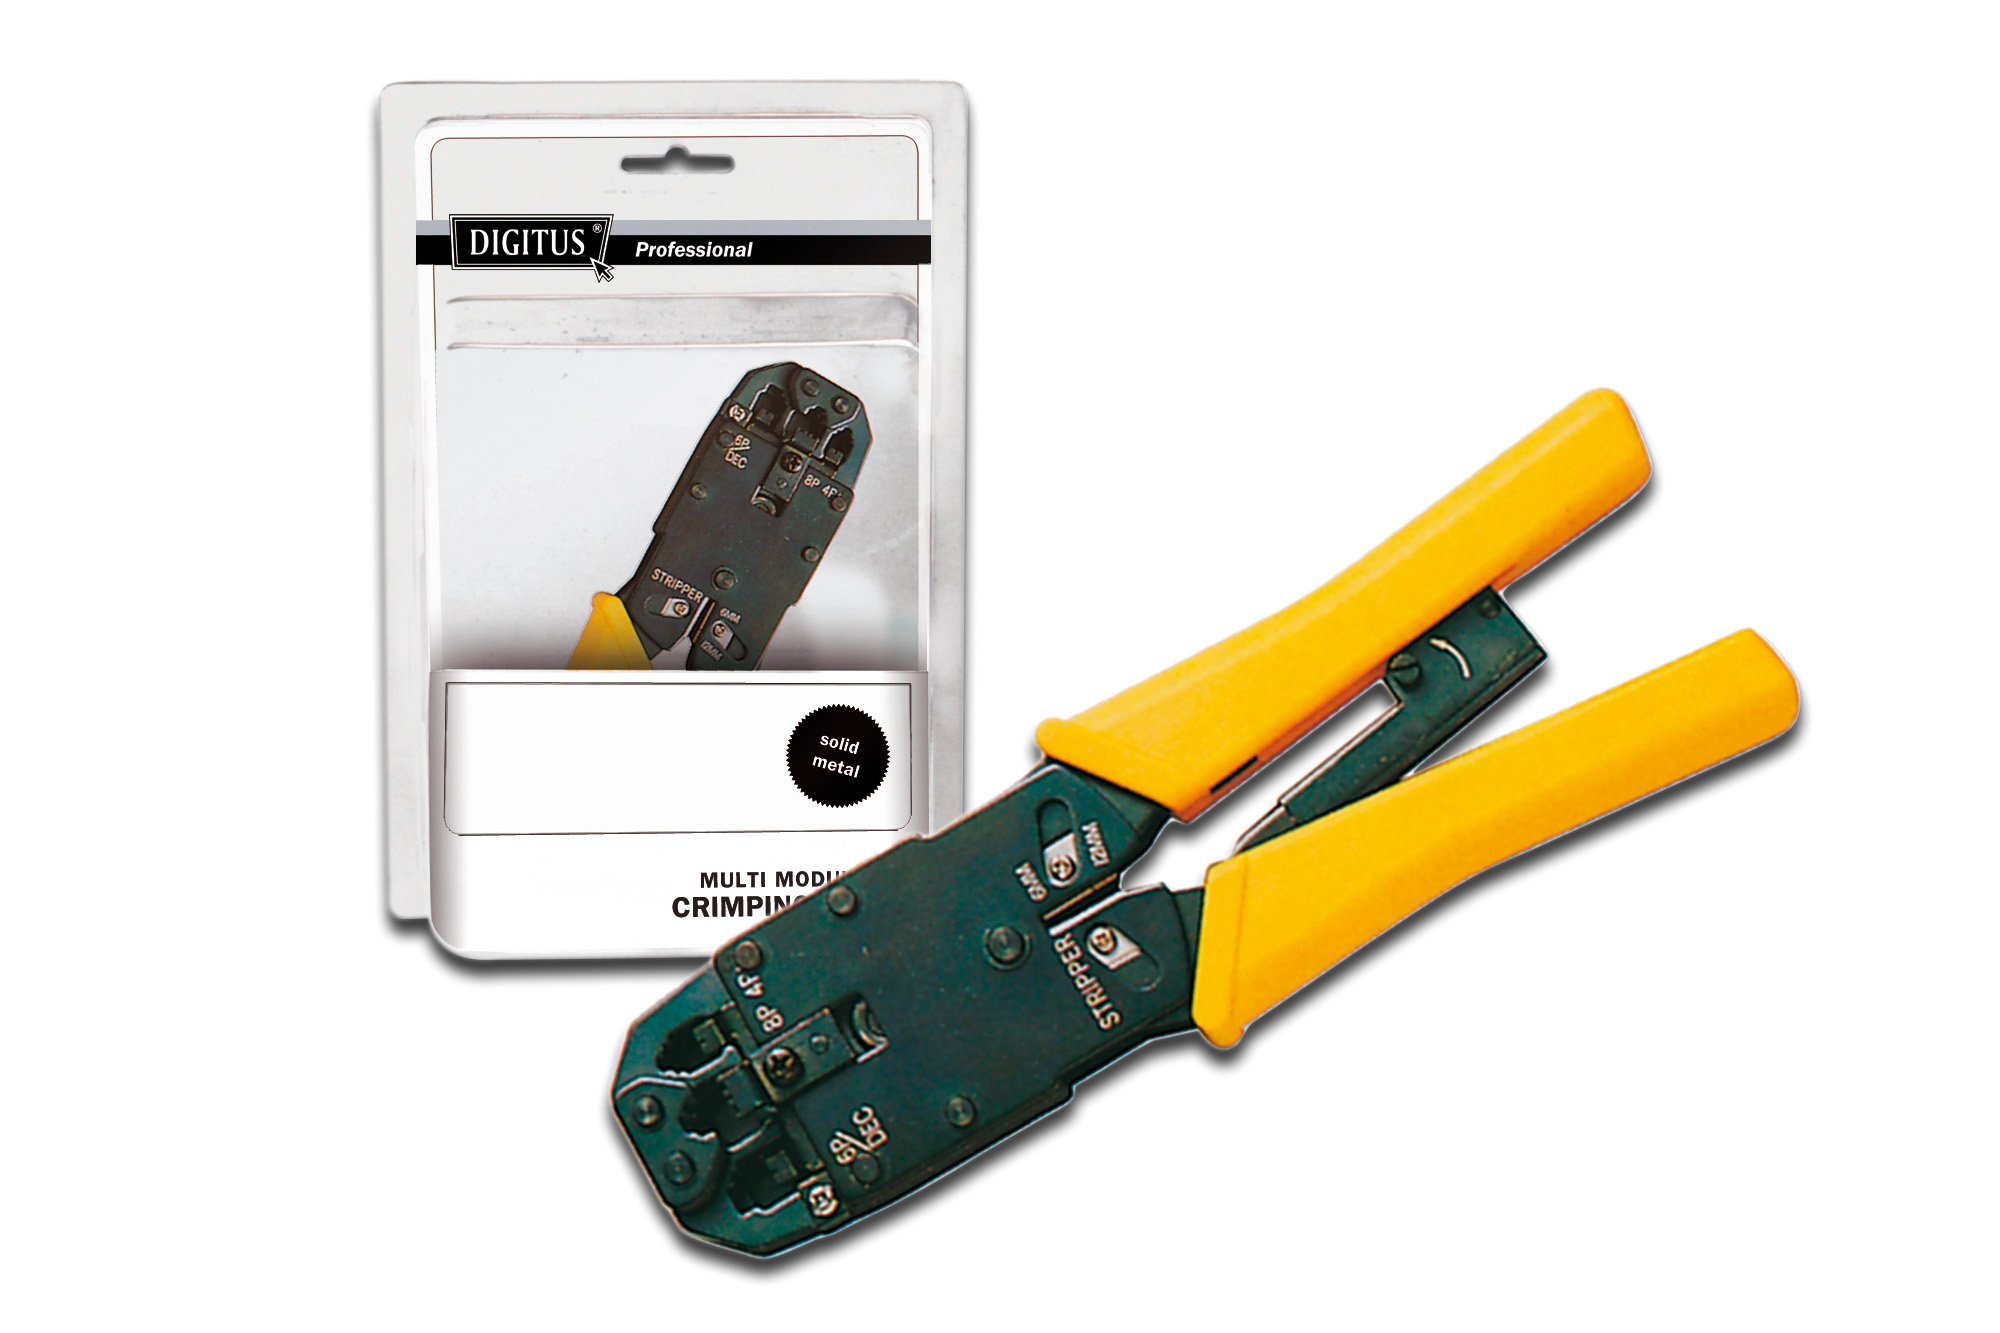 DIGITUS DN-94004 CABLE CRIMPER GREEN,YELLOW